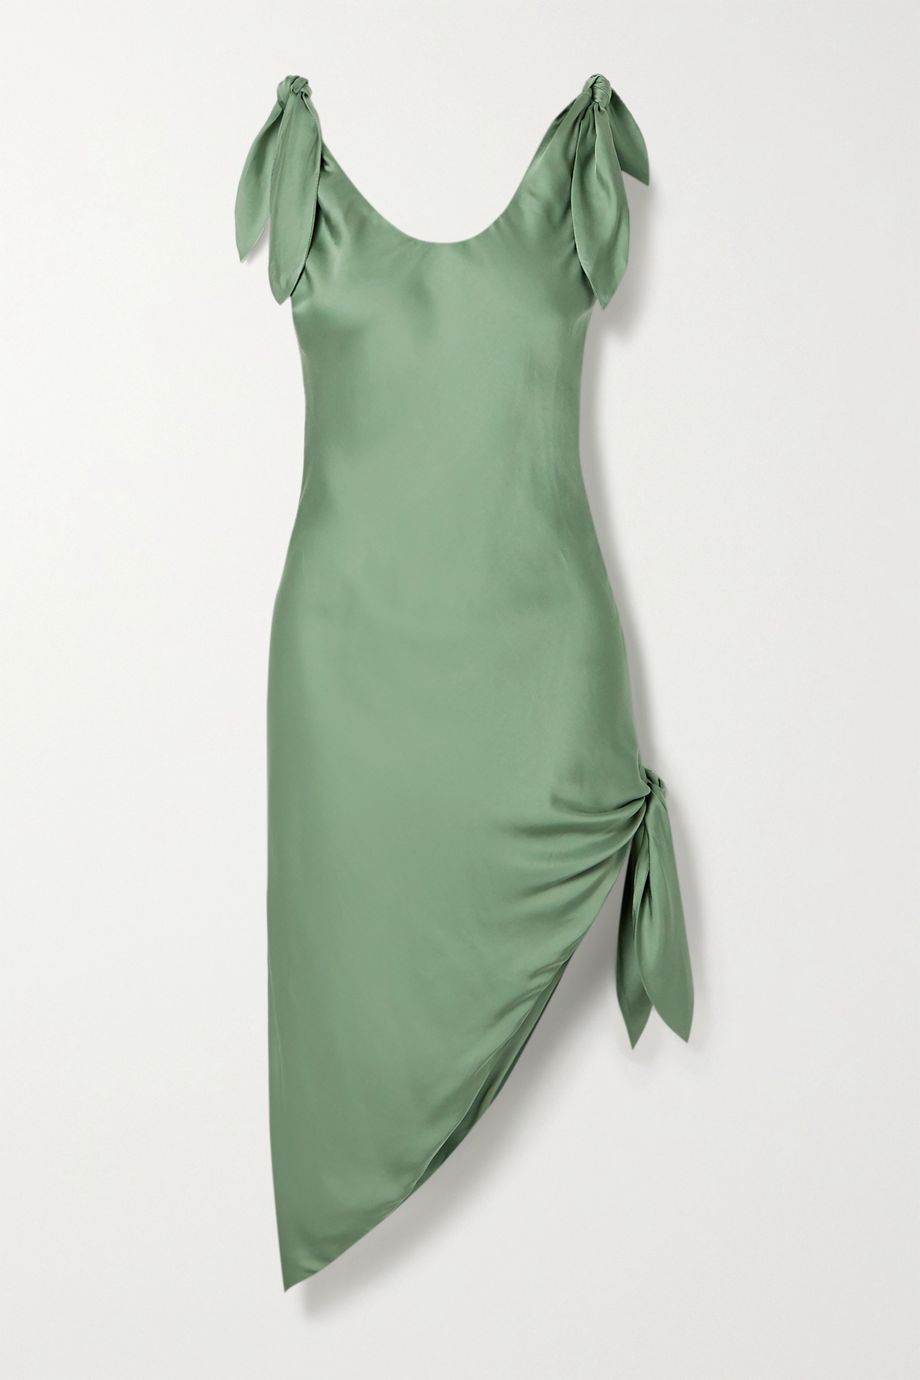 Cult Gaia Delilah knotted satin dress